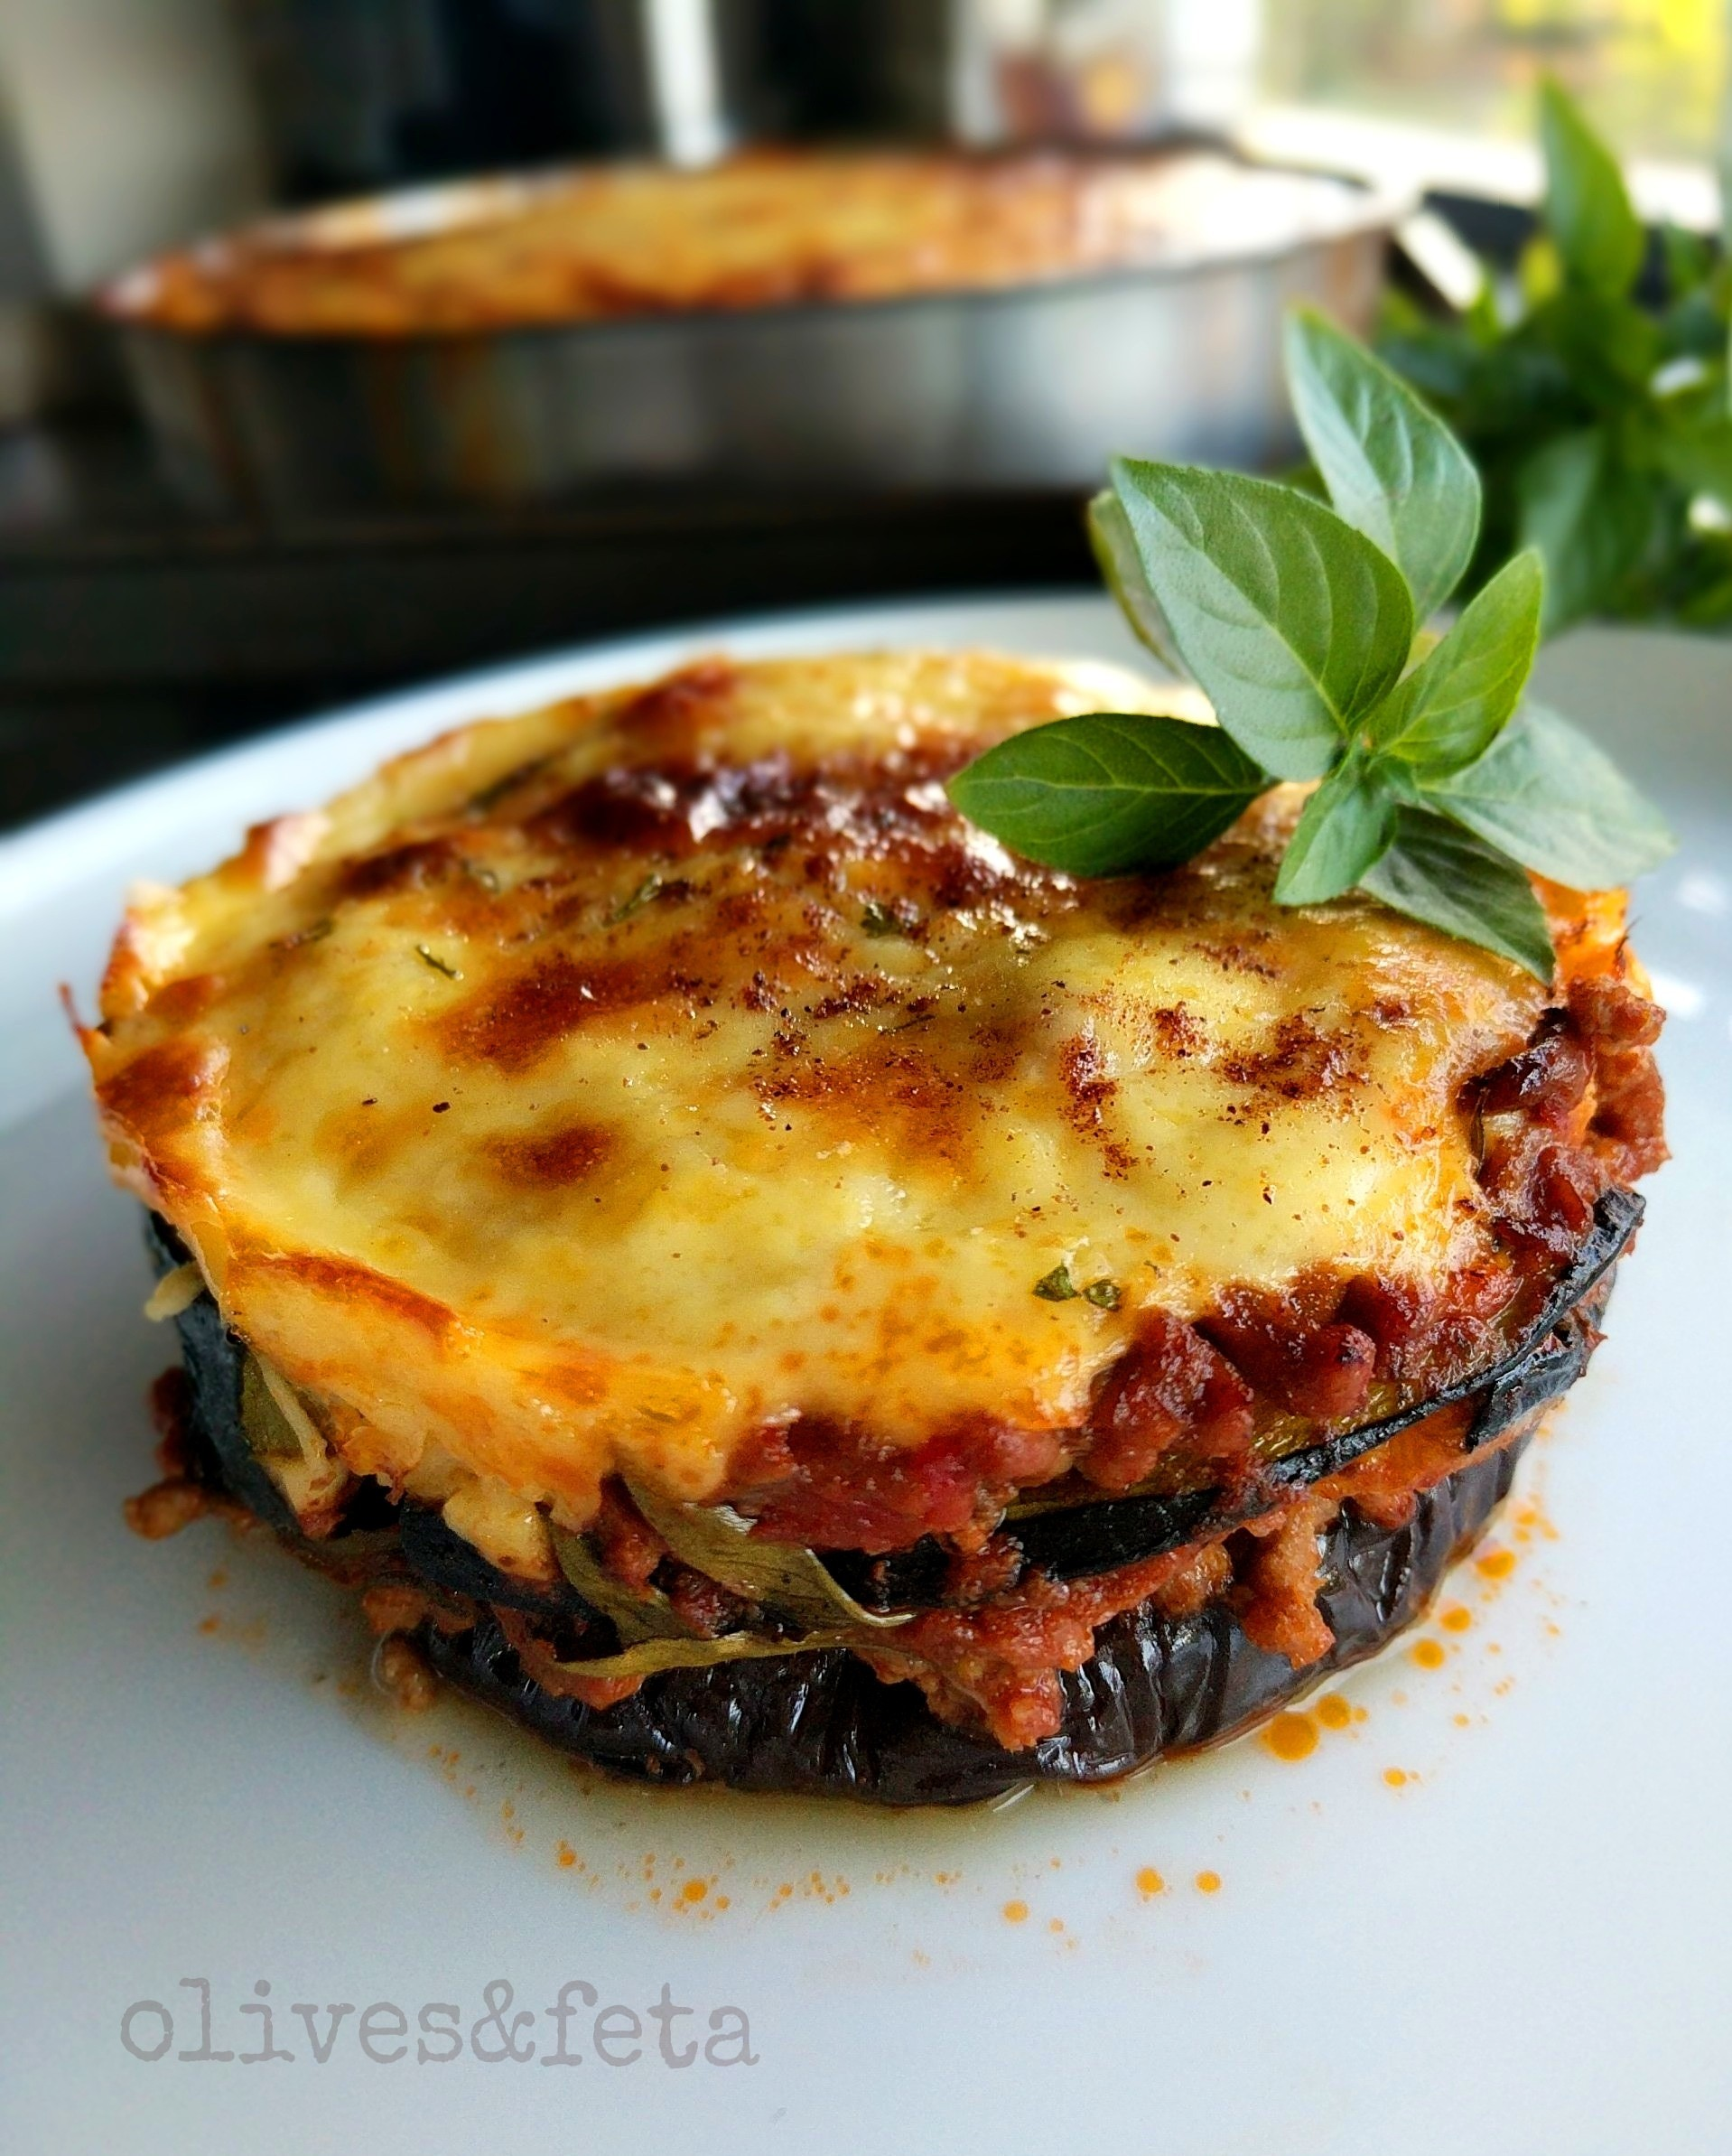 Moussaka Recipe With Aubergine Zucchini And Herbs Olivesandfeta